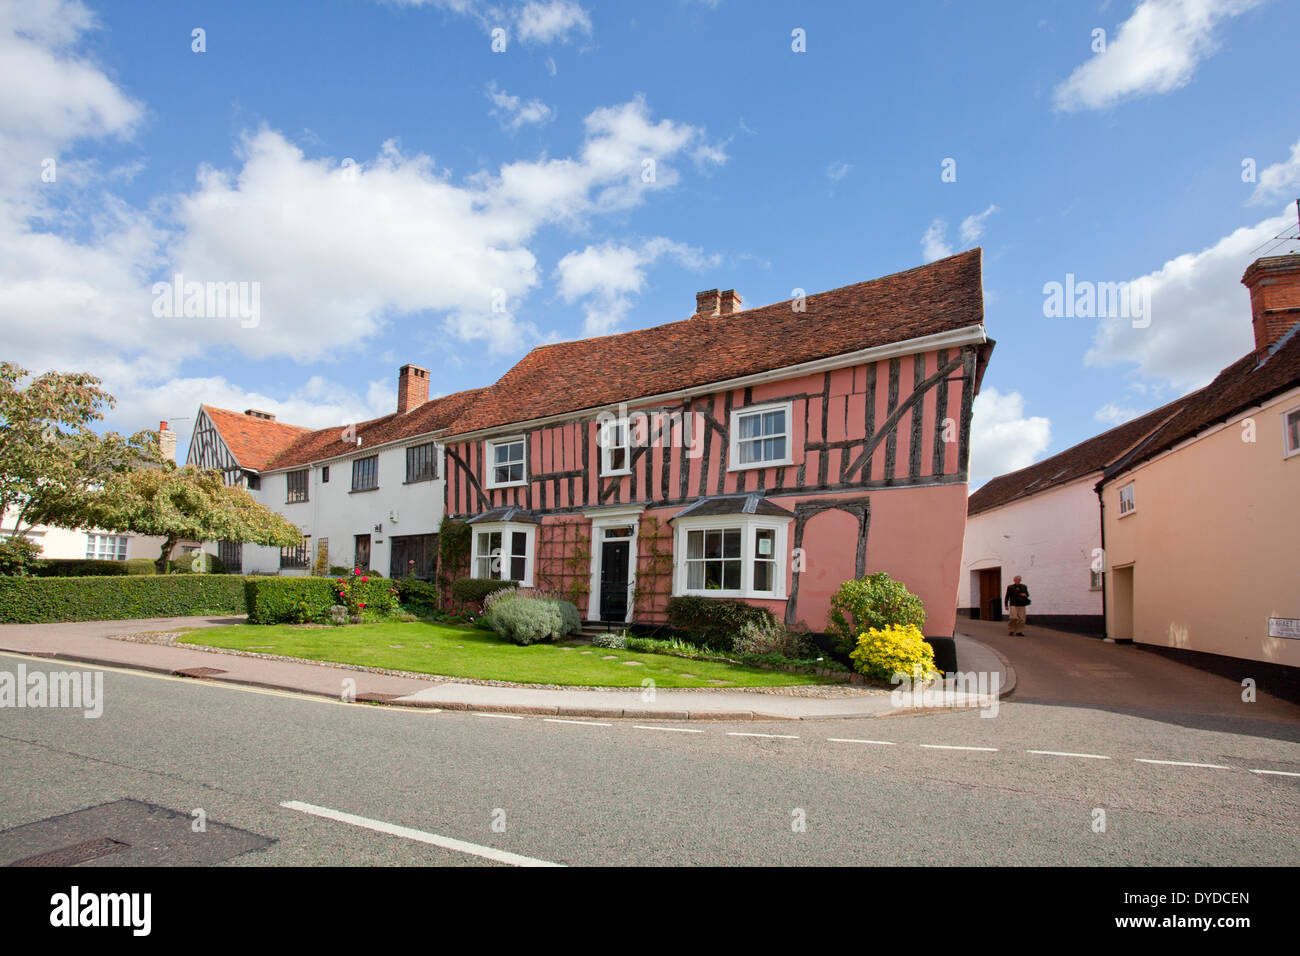 The village of Lavenham. - Stock Image